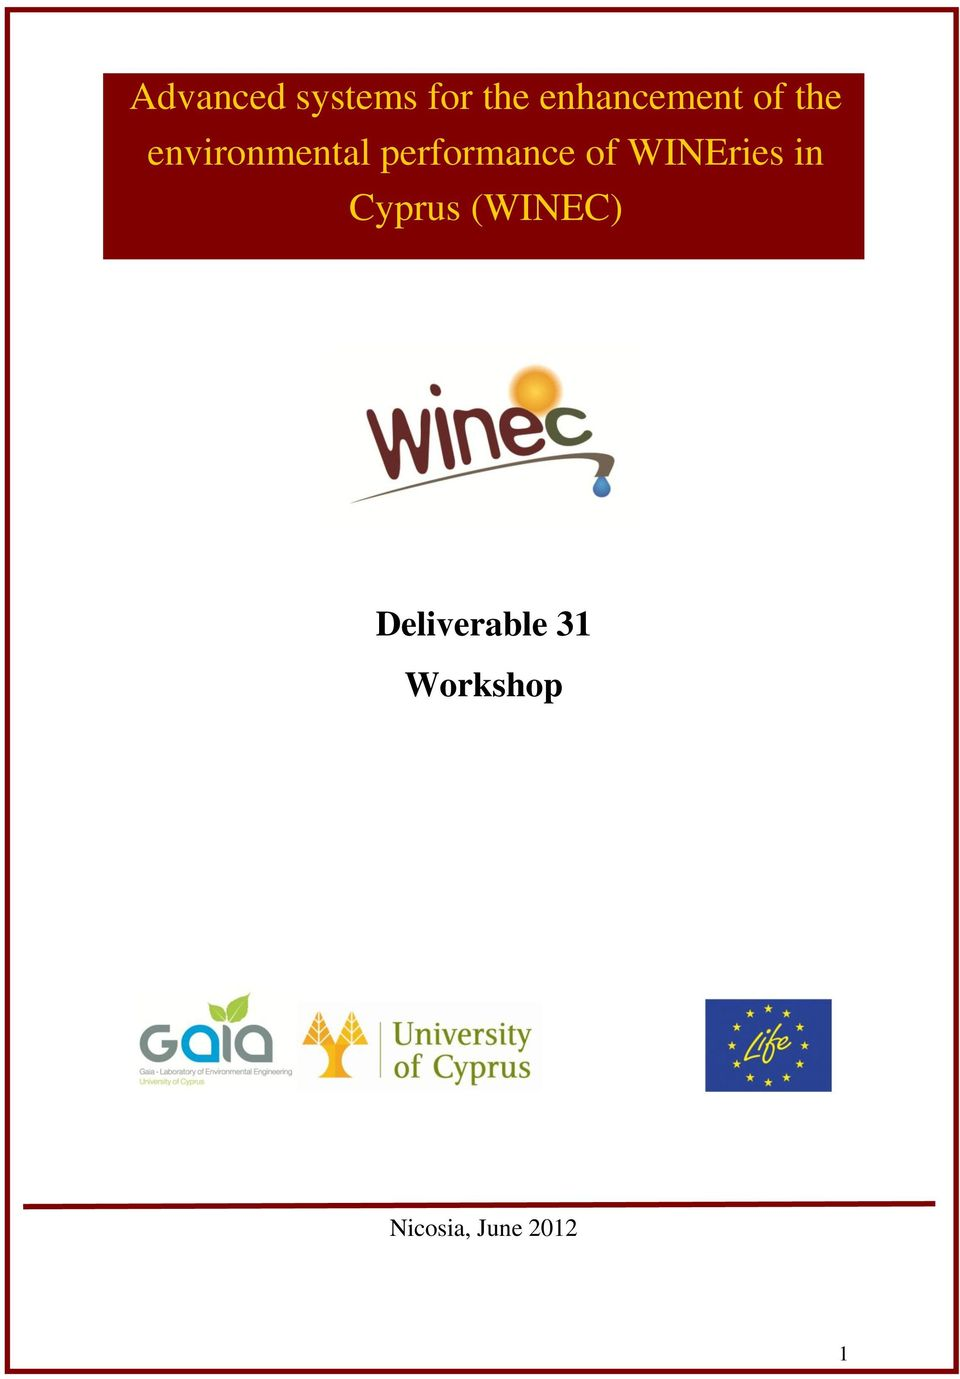 performance of WINEries in Cyprus